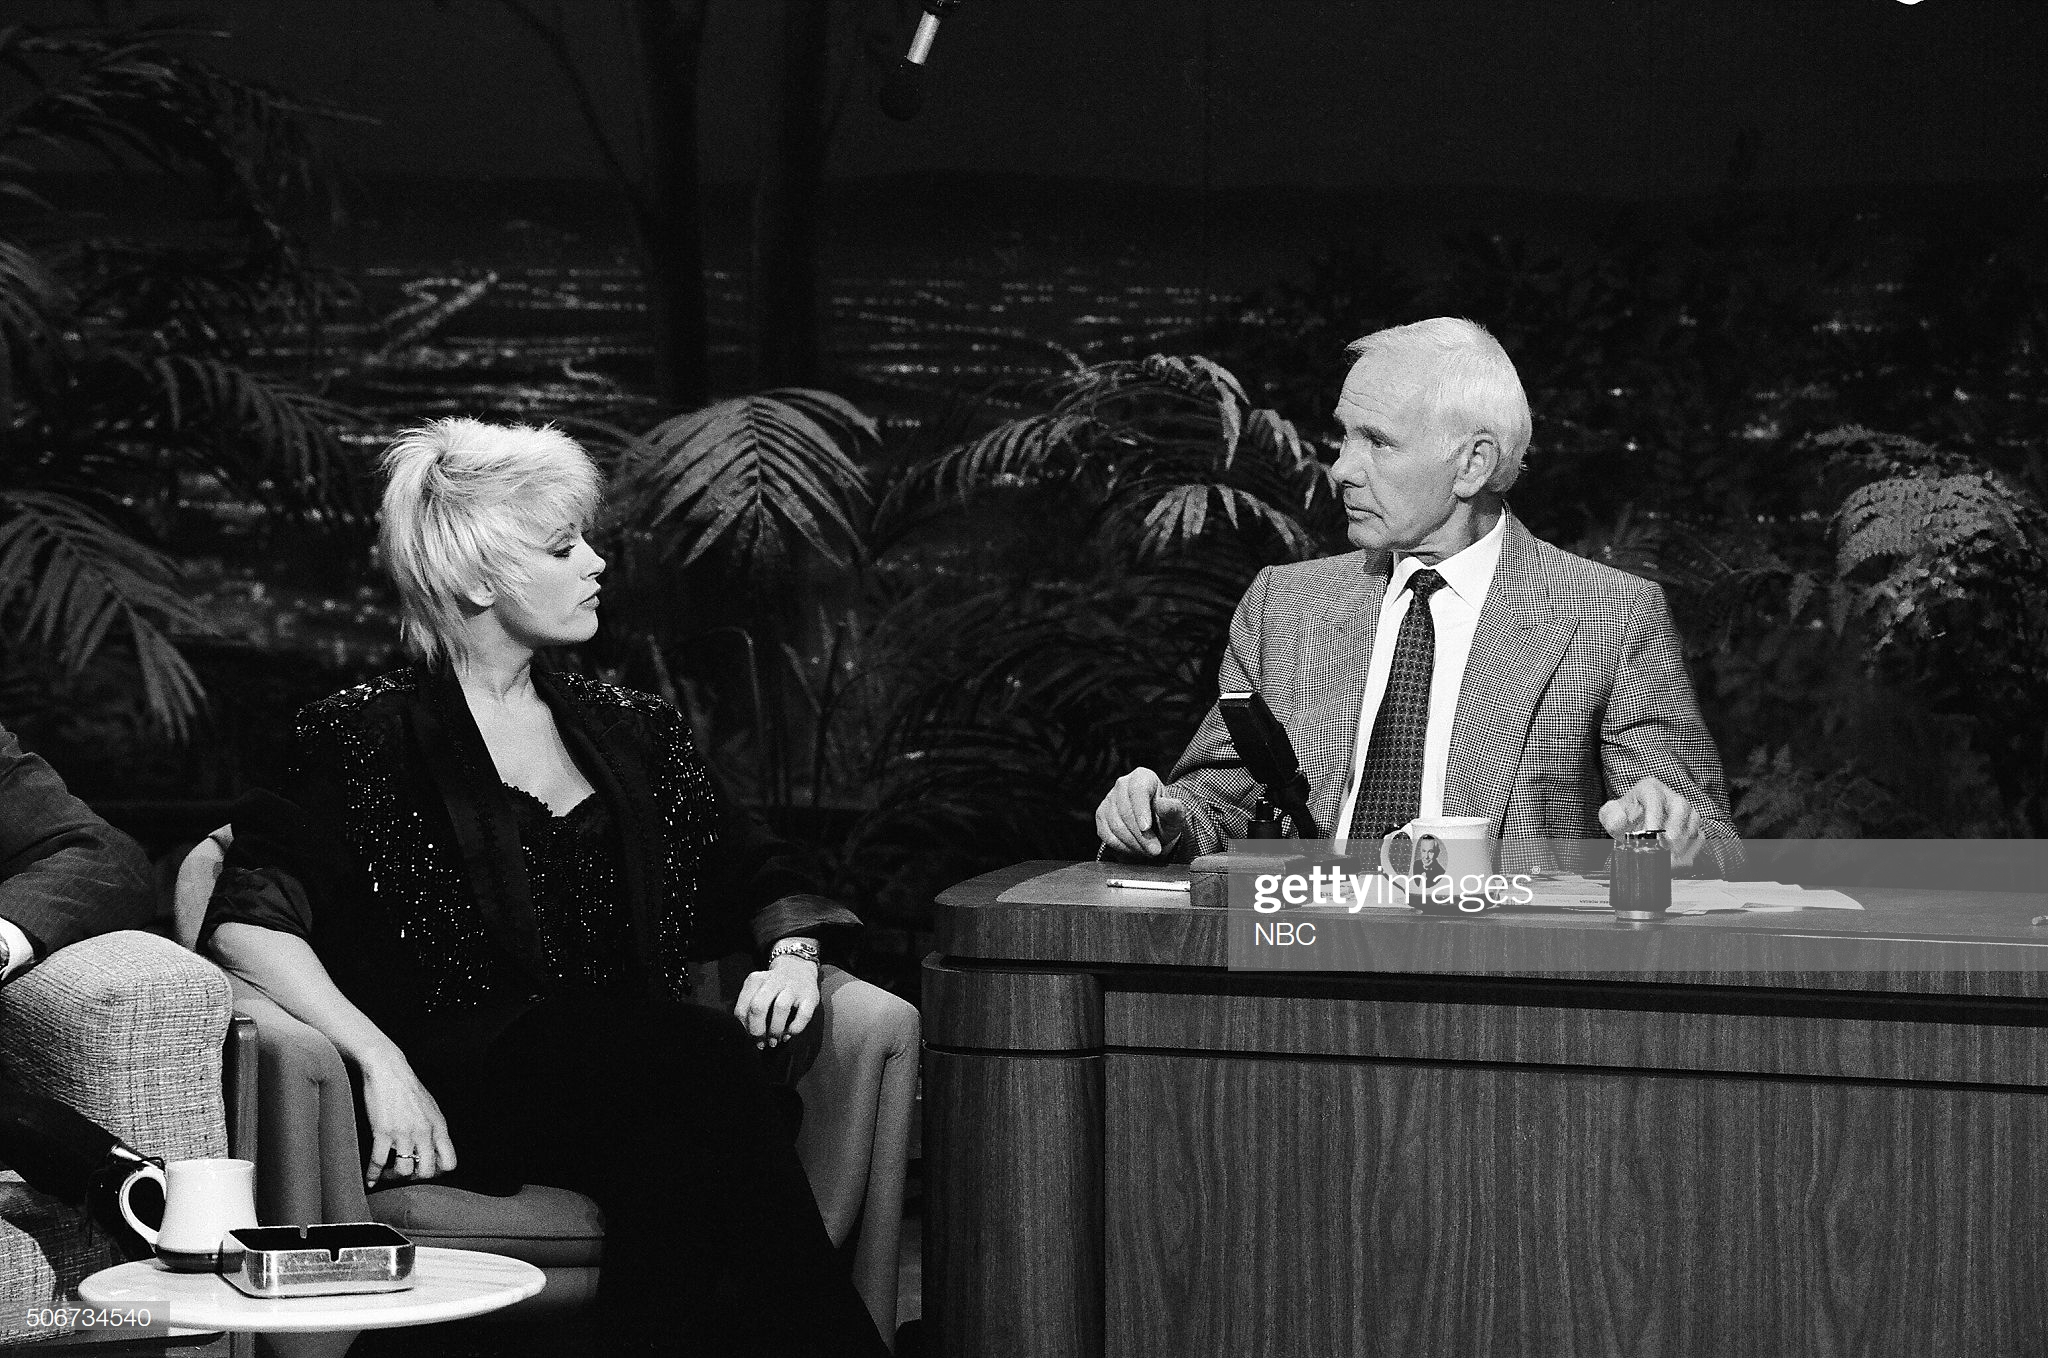 """I remember I was a nervous wreck, but Johnny was so gracious to me. I got to go over and sit on the couch and talk to him. Johnny always reminded me a lot of my dad, and I told him that off-camera. I was just so honored and humbled to be on the show."" -  Medium /photo getty images"